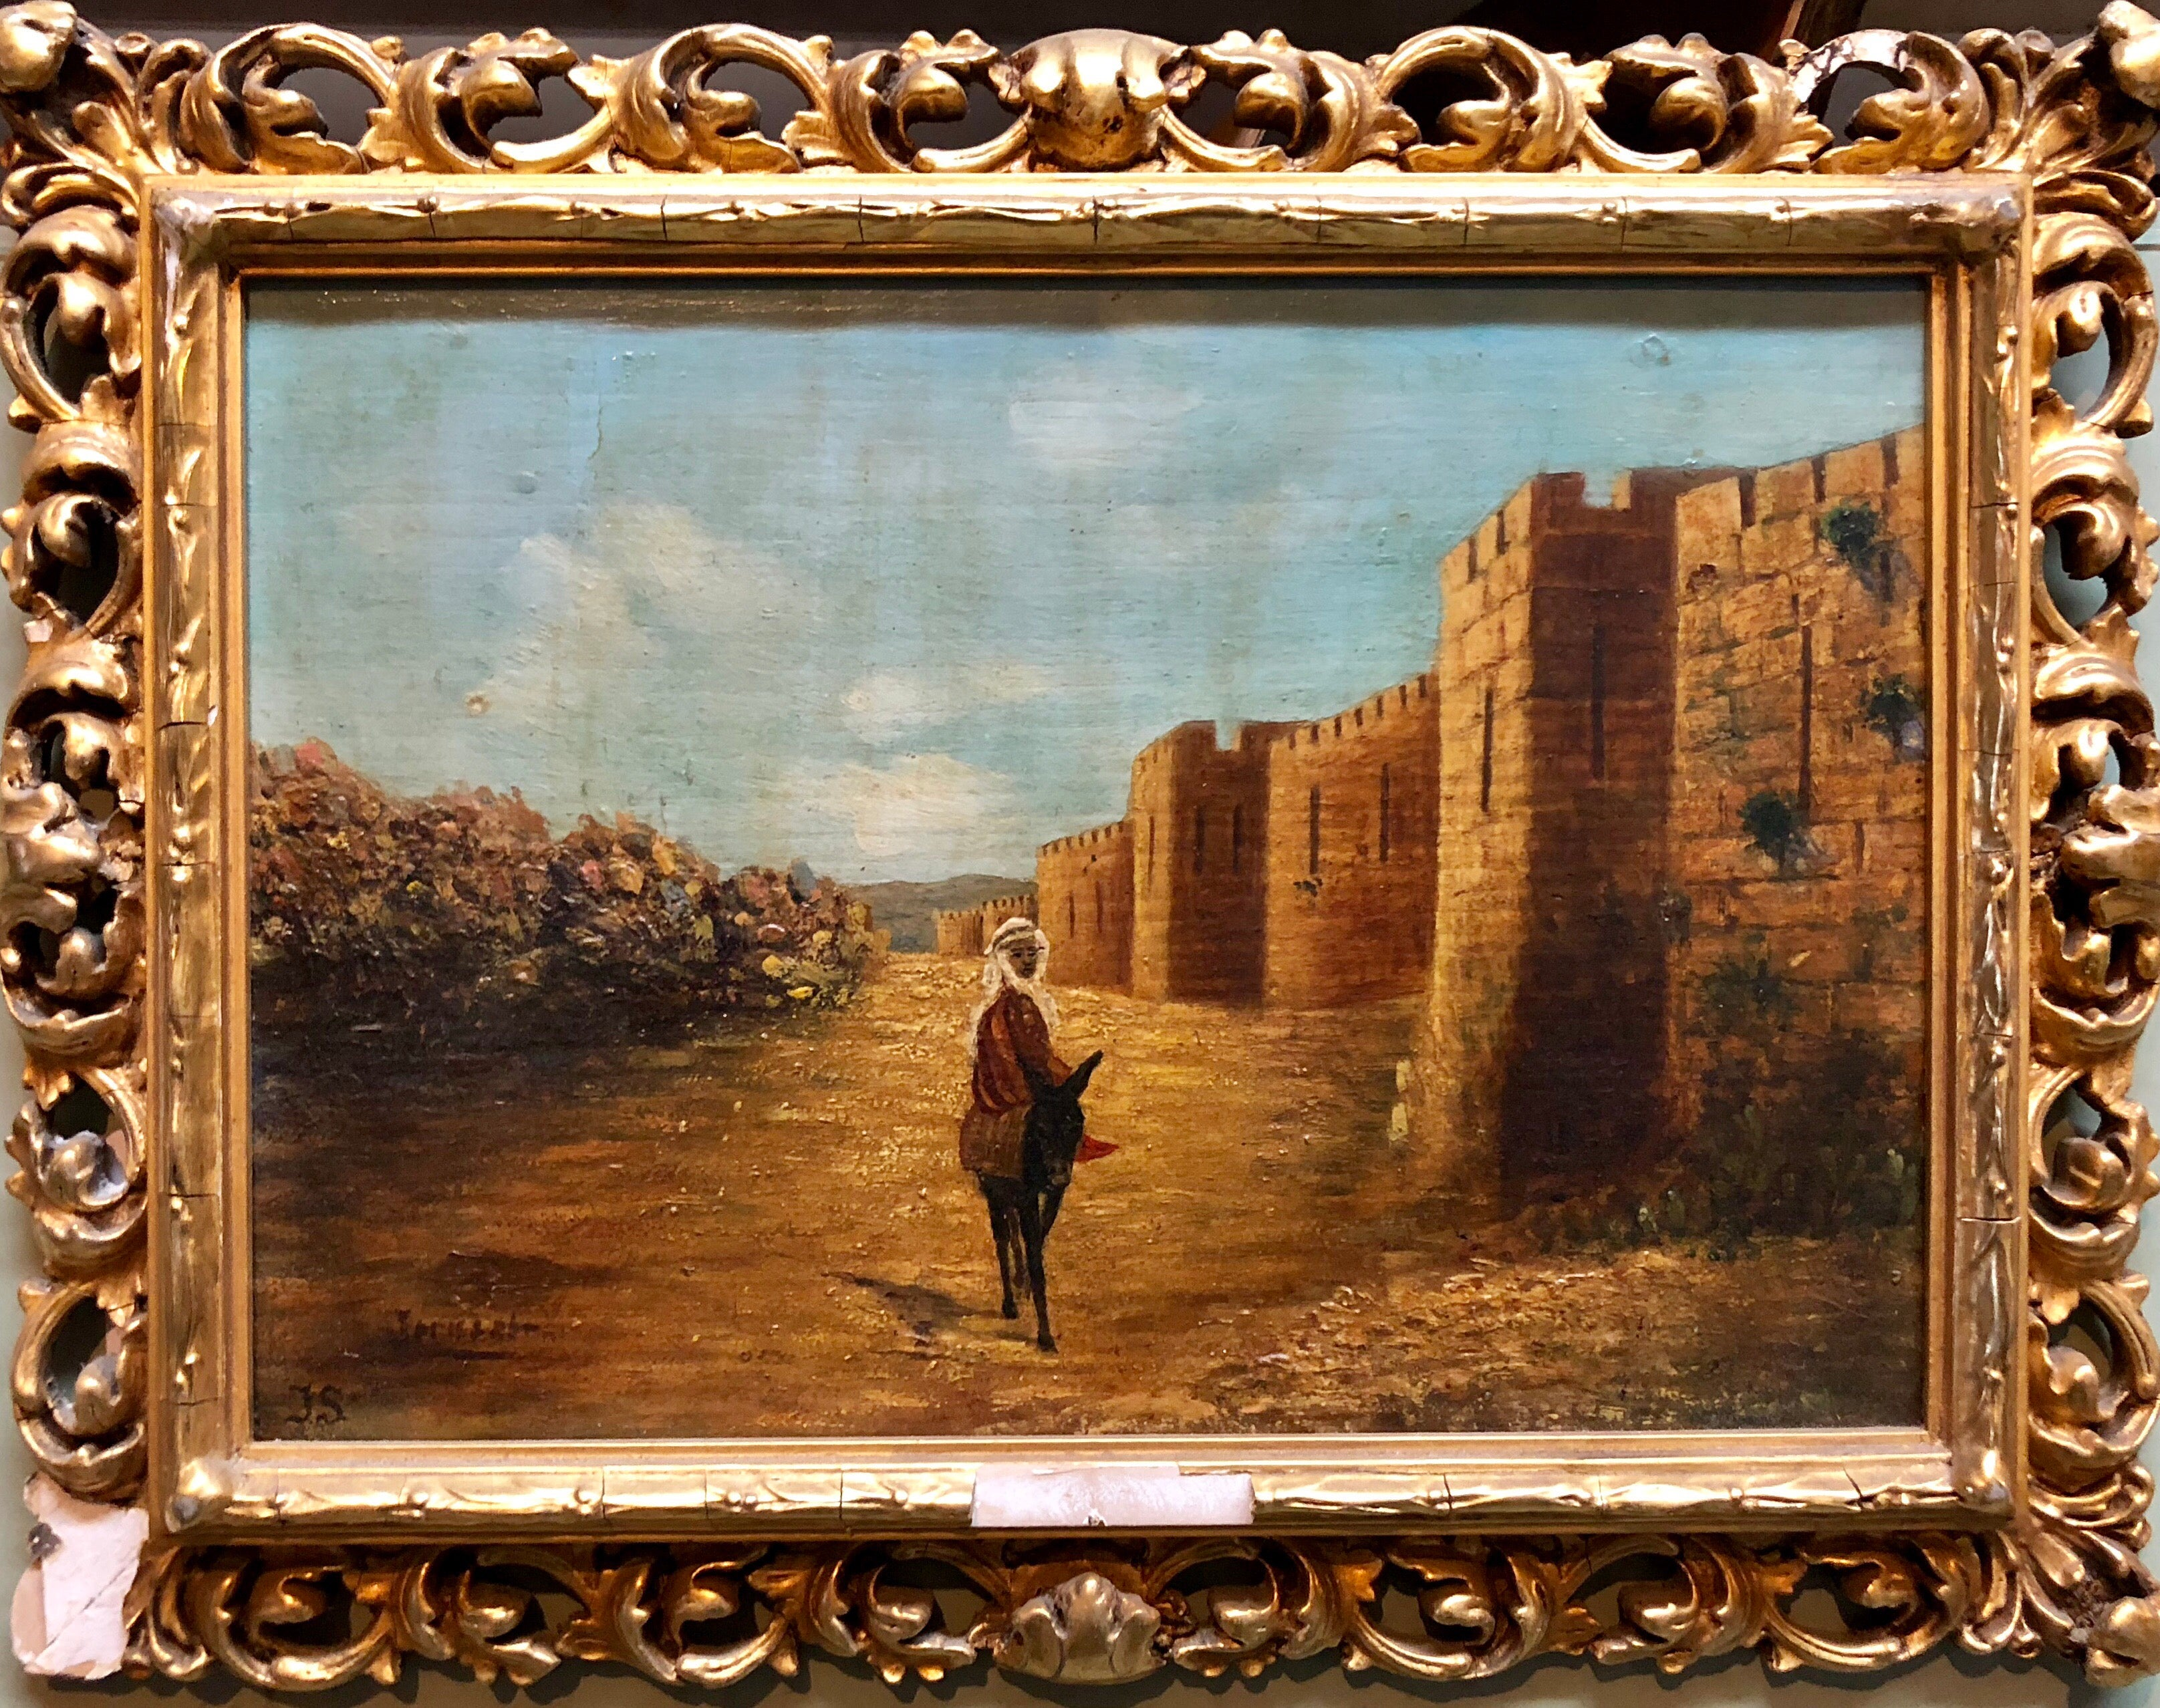 Antique Oil Painting Of Jerusalem Ascent to Old City Walls